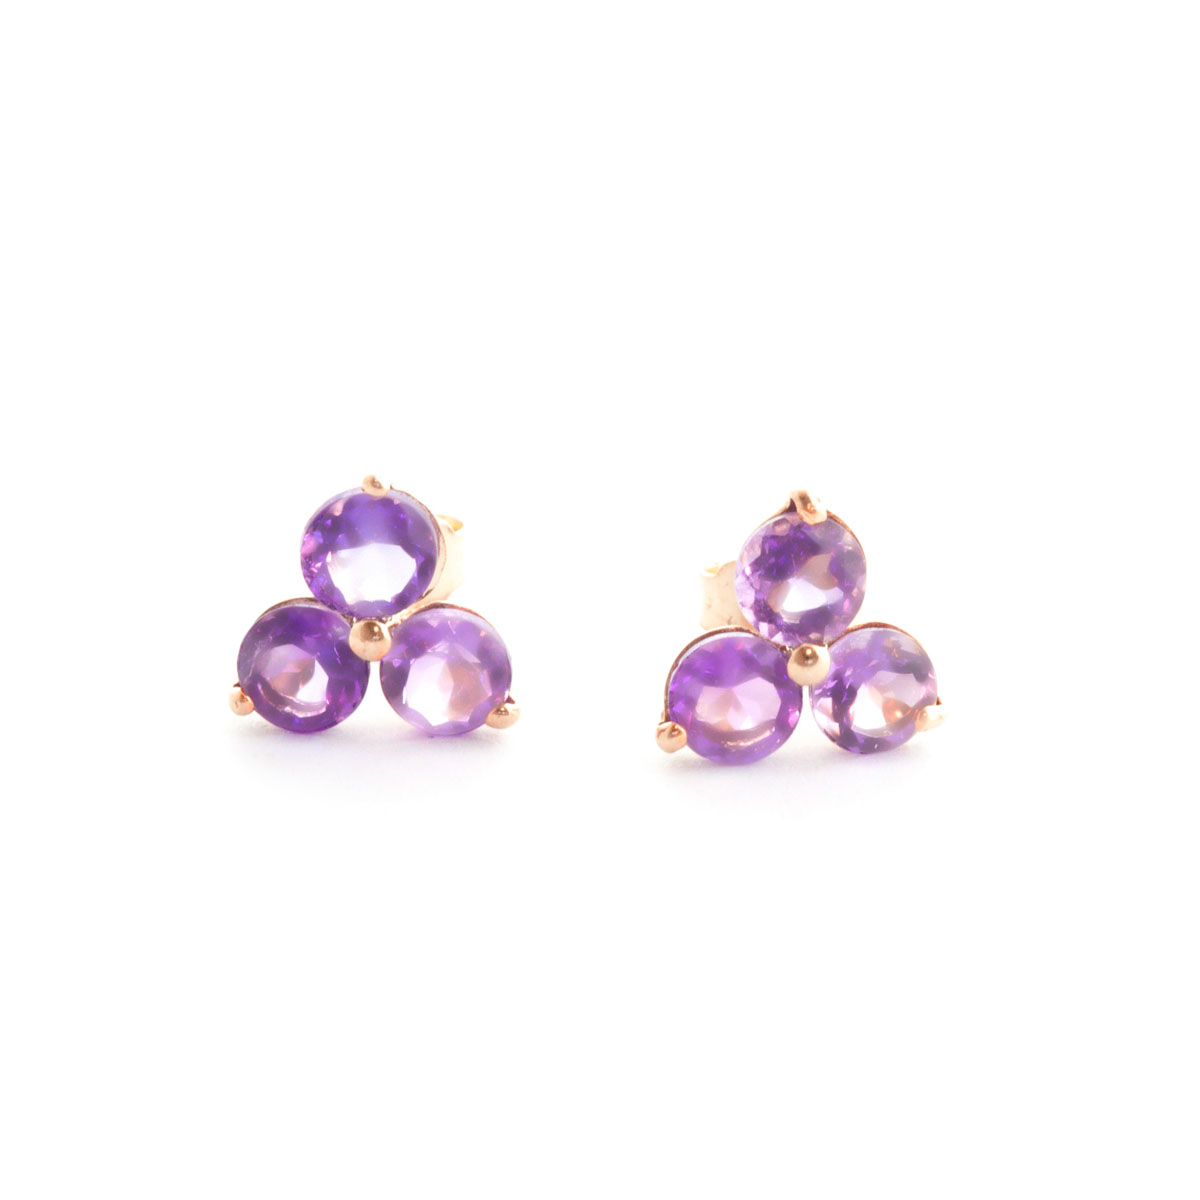 Amethyst Trinity Stud Earrings 1.5 ctw in 9ct Rose Gold